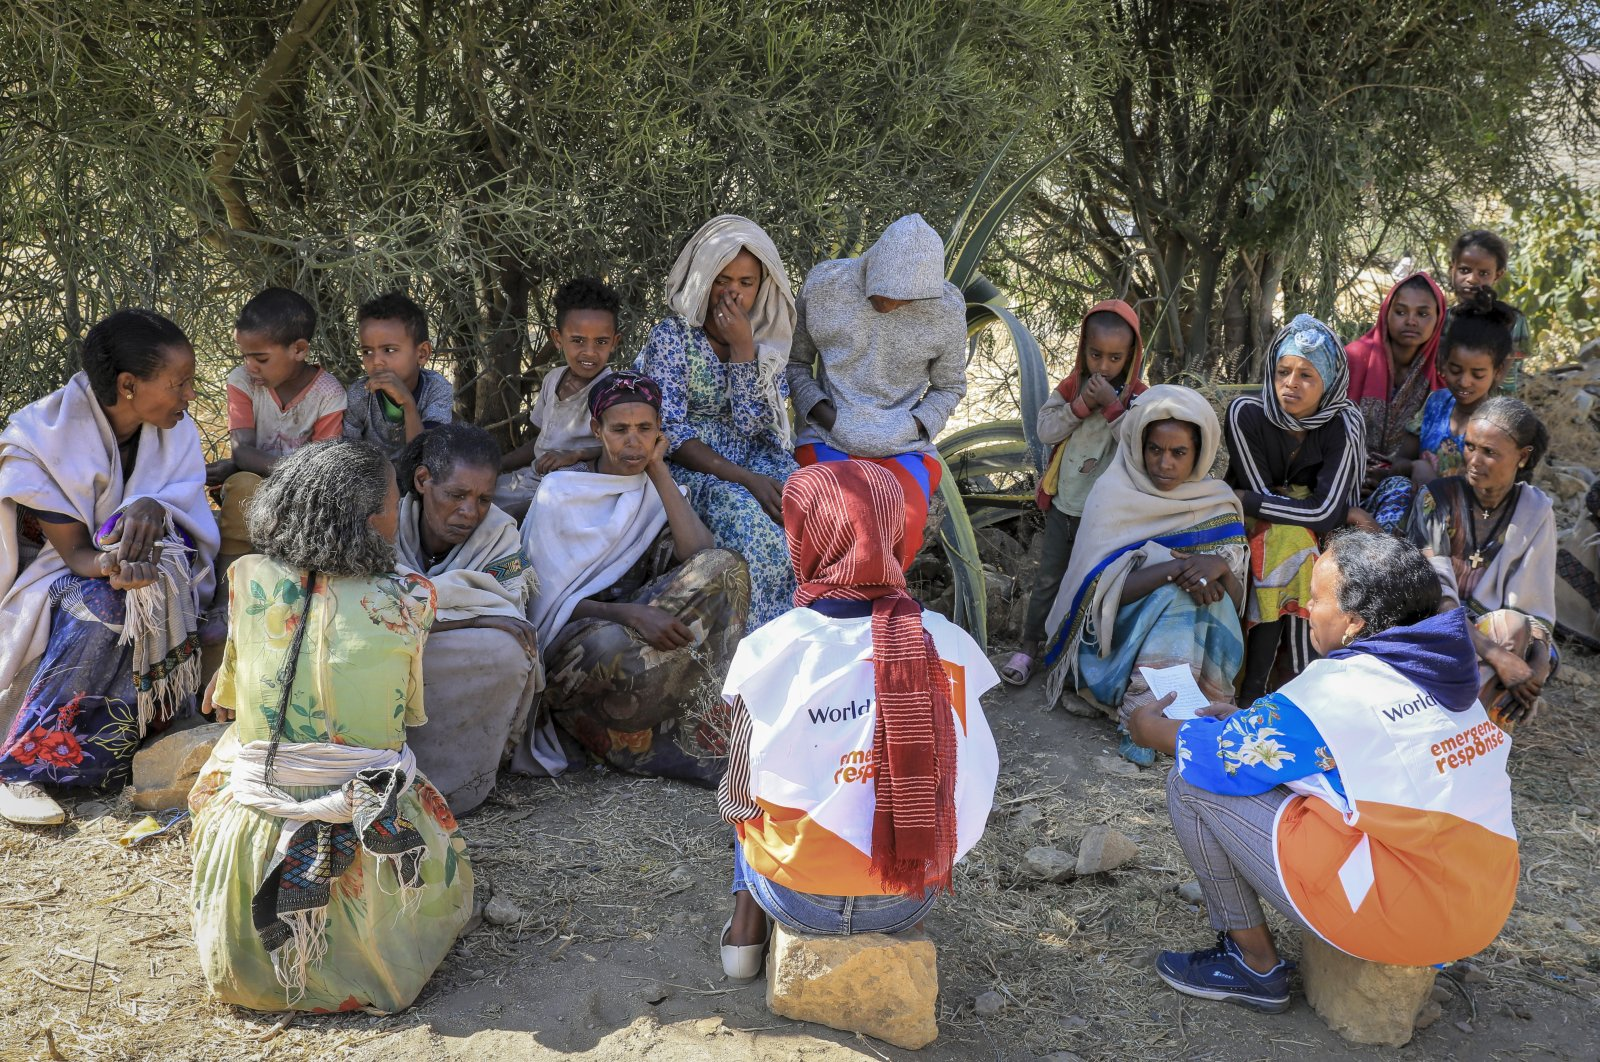 Displaced people speak to a community assessment team from World Vision, in the Enderta district of the Tigray region of northern Ethiopia, Jan. 15, 2021. (AP Photo)